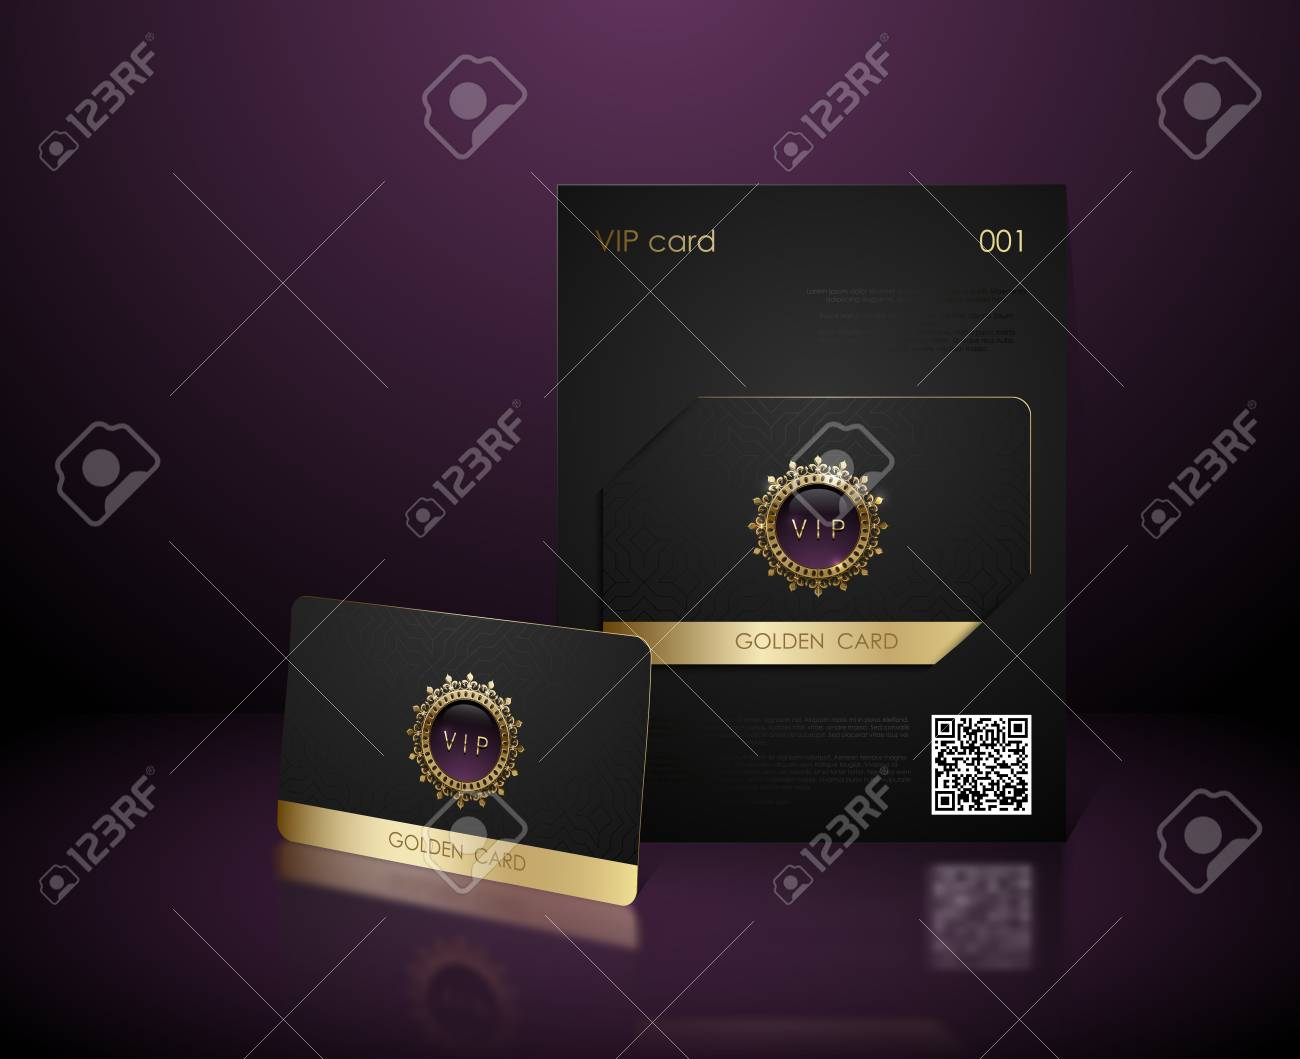 Vector black vip card presentation with golden frame  VIP membership